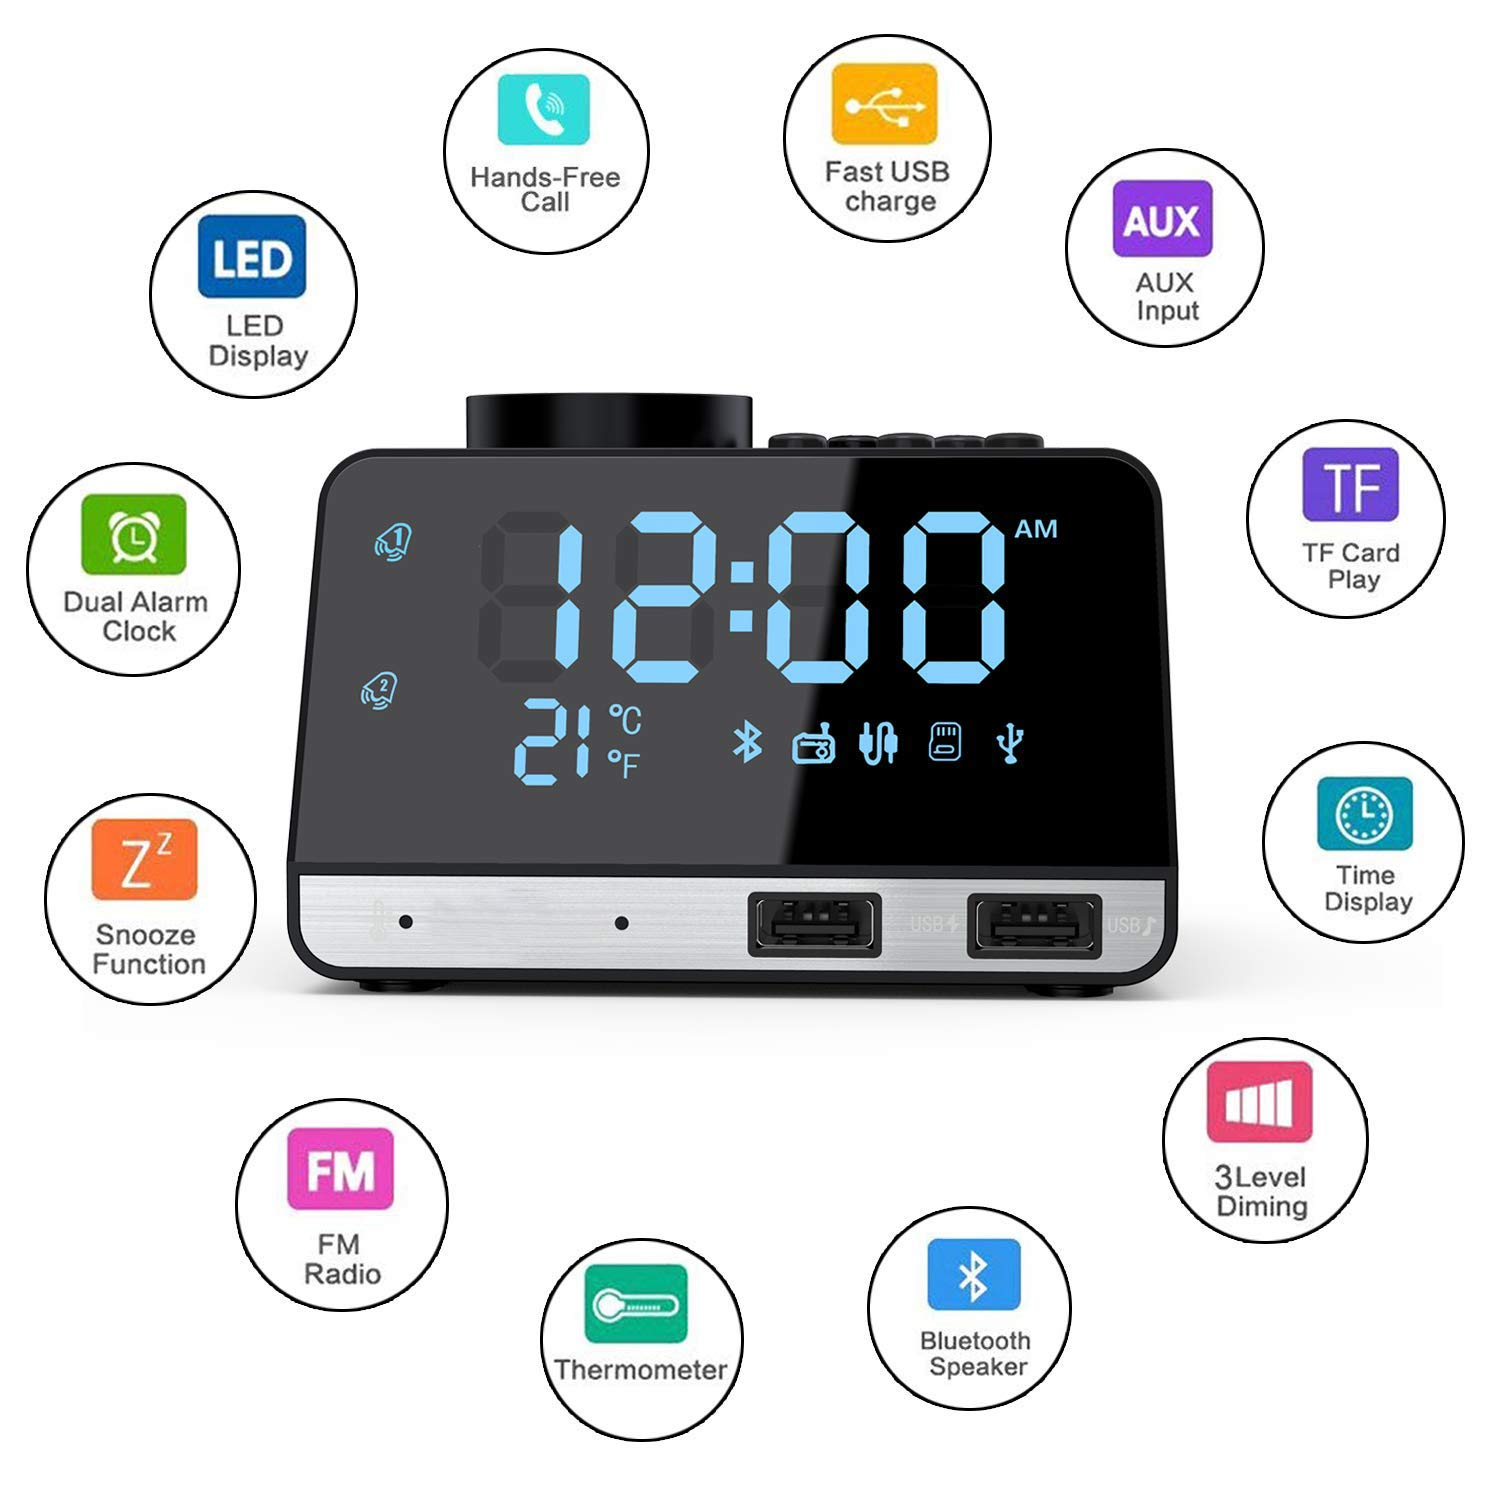 MKYUHP Alarm Clock Radio with Bluetooth Speaker,Double USB Charger,Dual Alarm,Snooze,AUX TF Card and Thermometer Mini Portable Digital Dimmer Clock ...